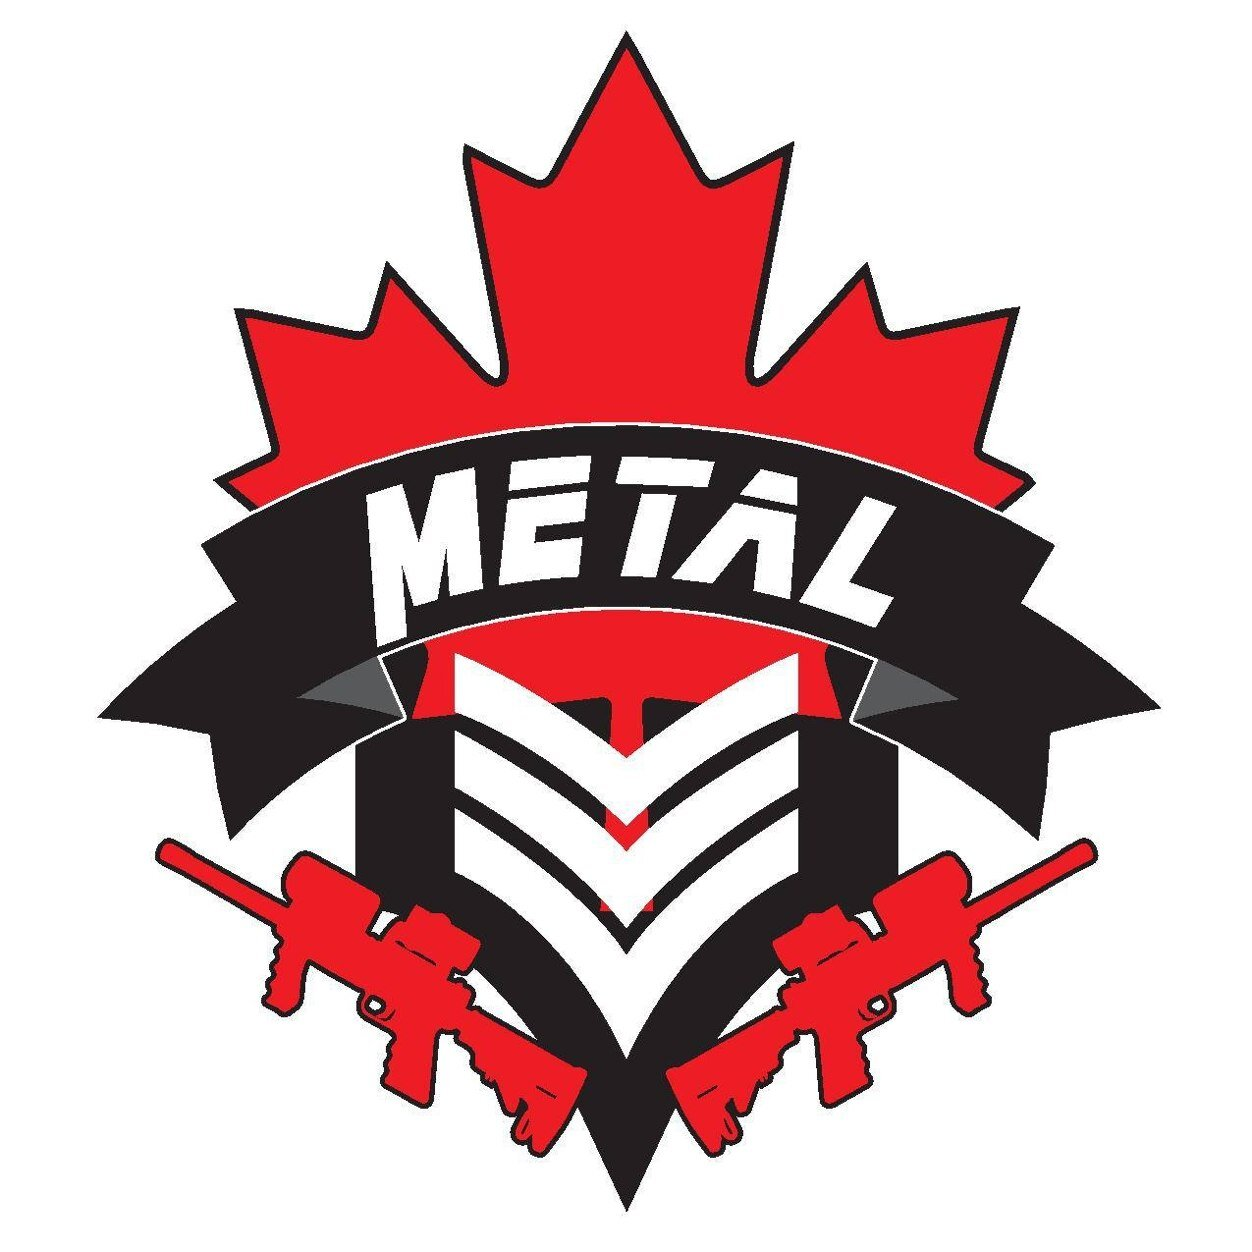 metaltactical on twitter mission edmonton tactical laser tag is rh twitter com Water Balloon Clip Art Bumper Cars Clip Art